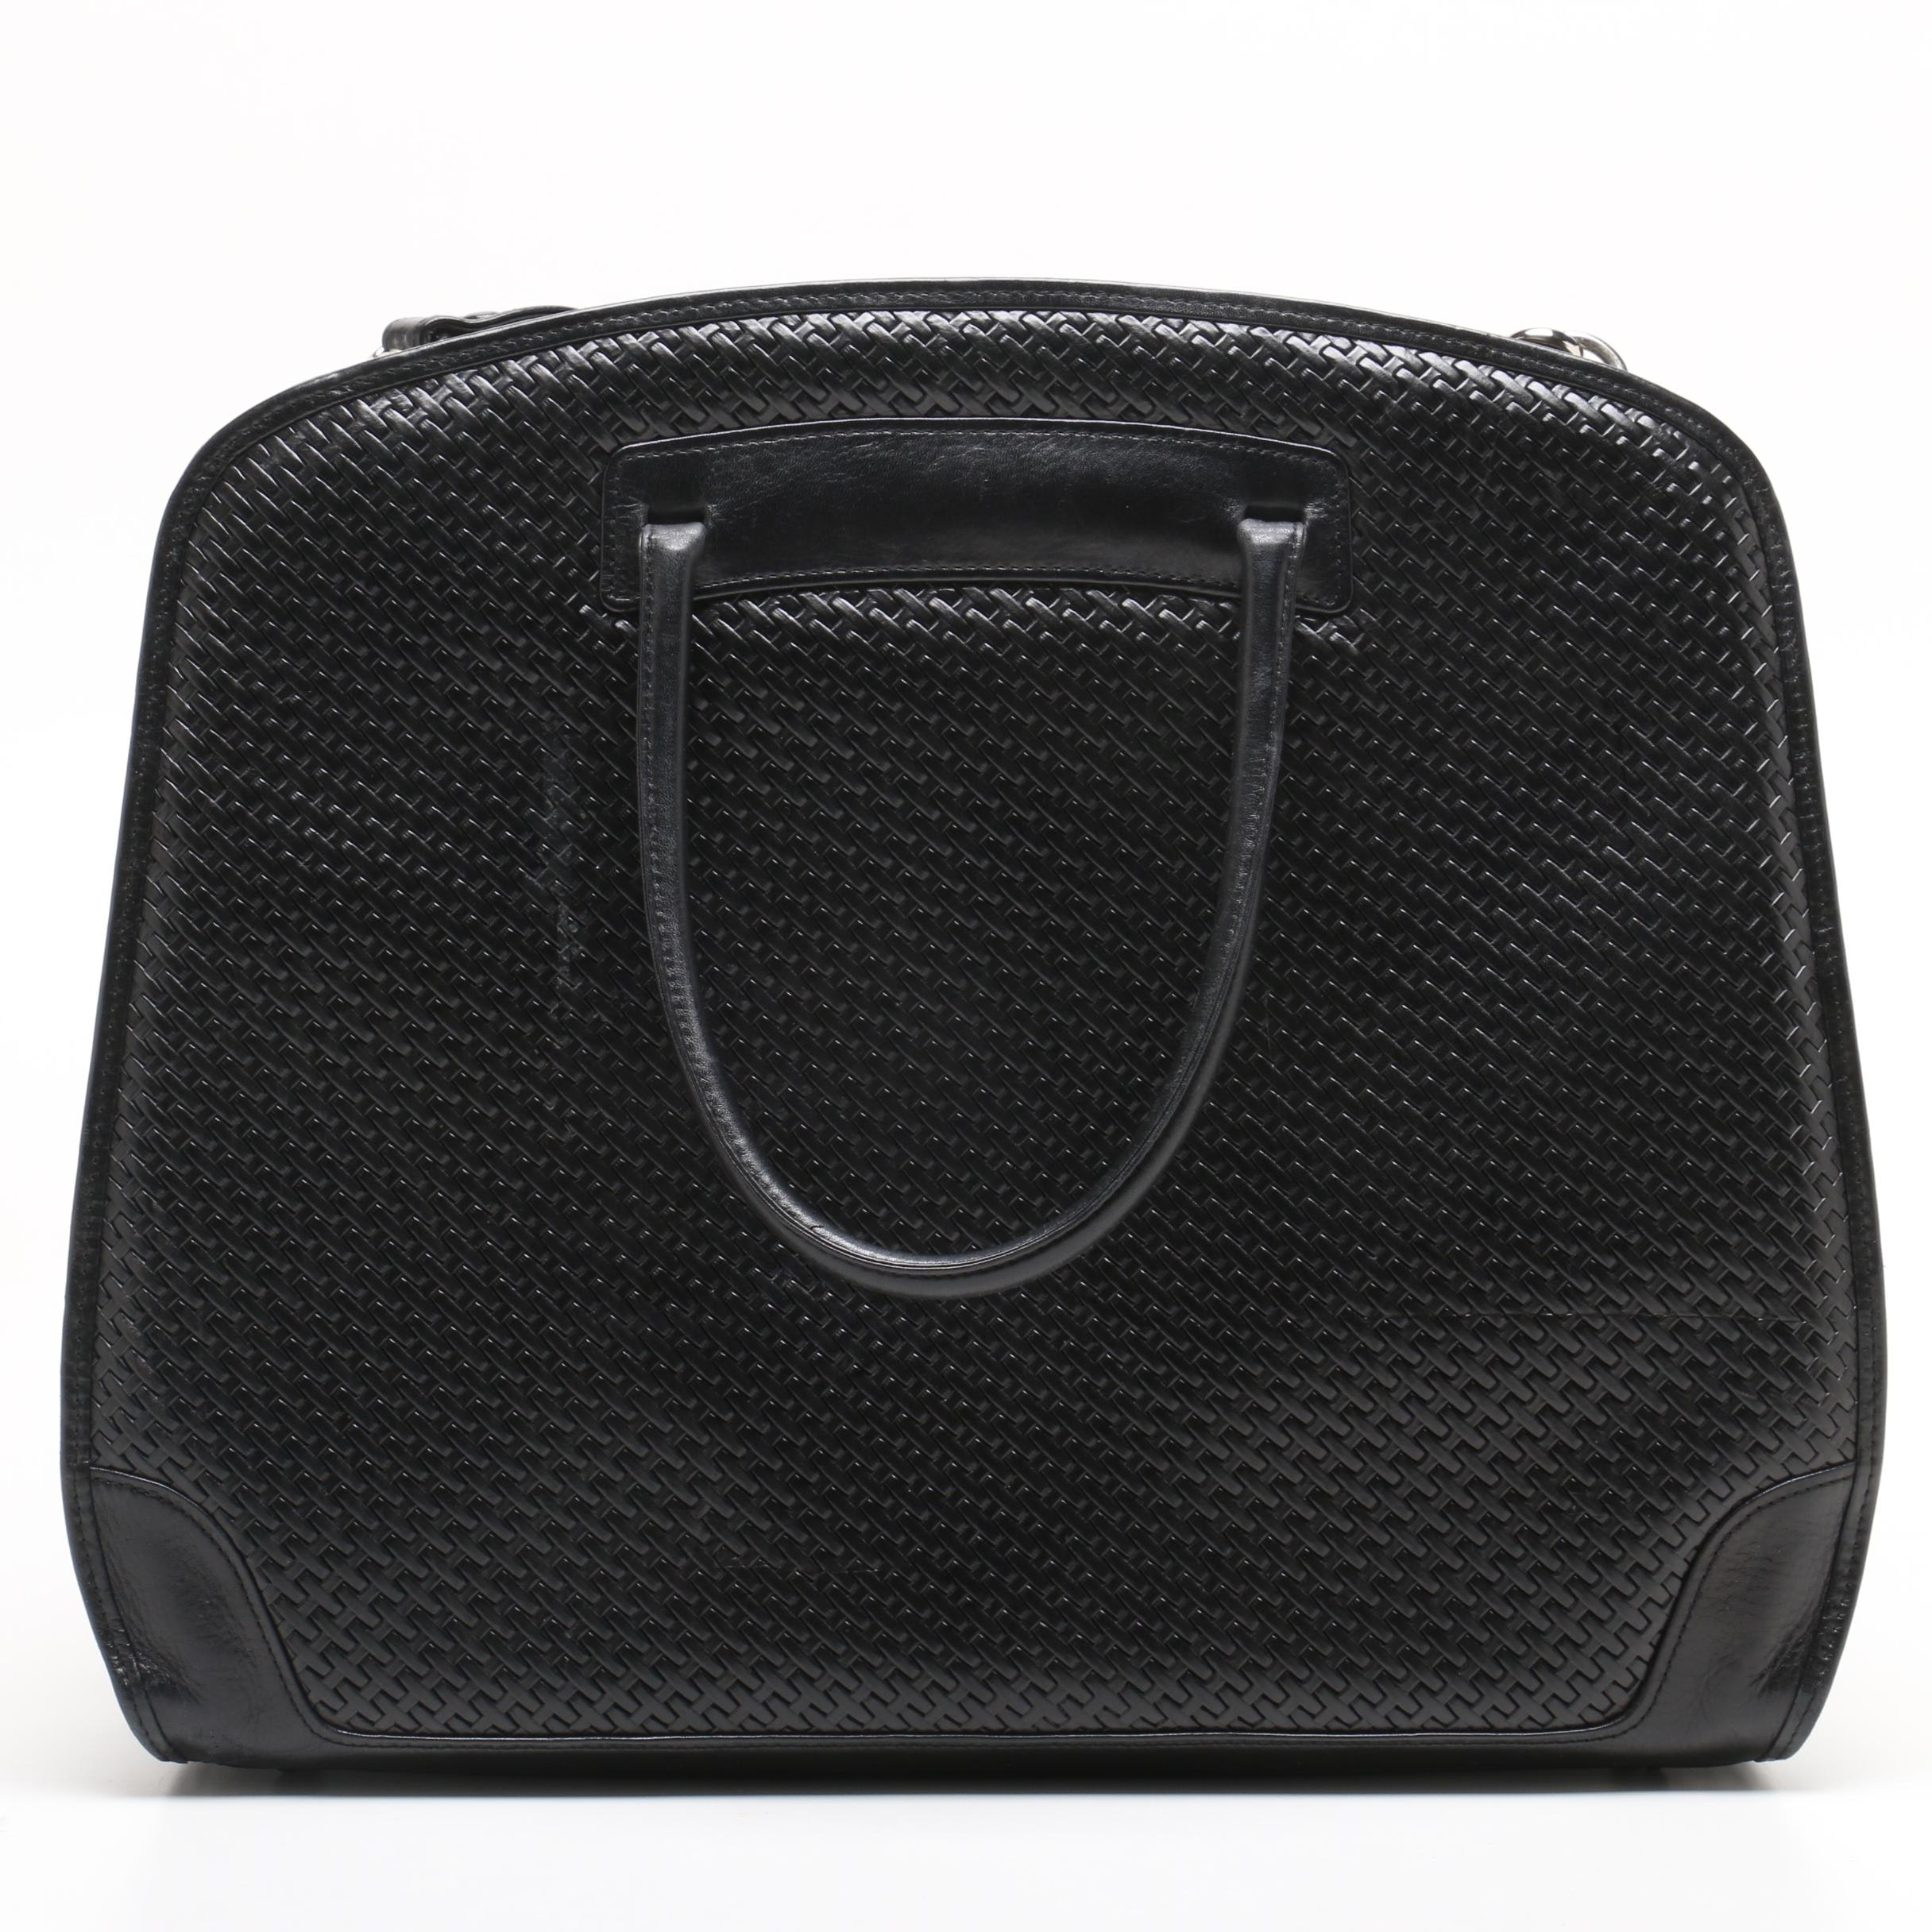 Bosca Black Woven Leather Tote bag